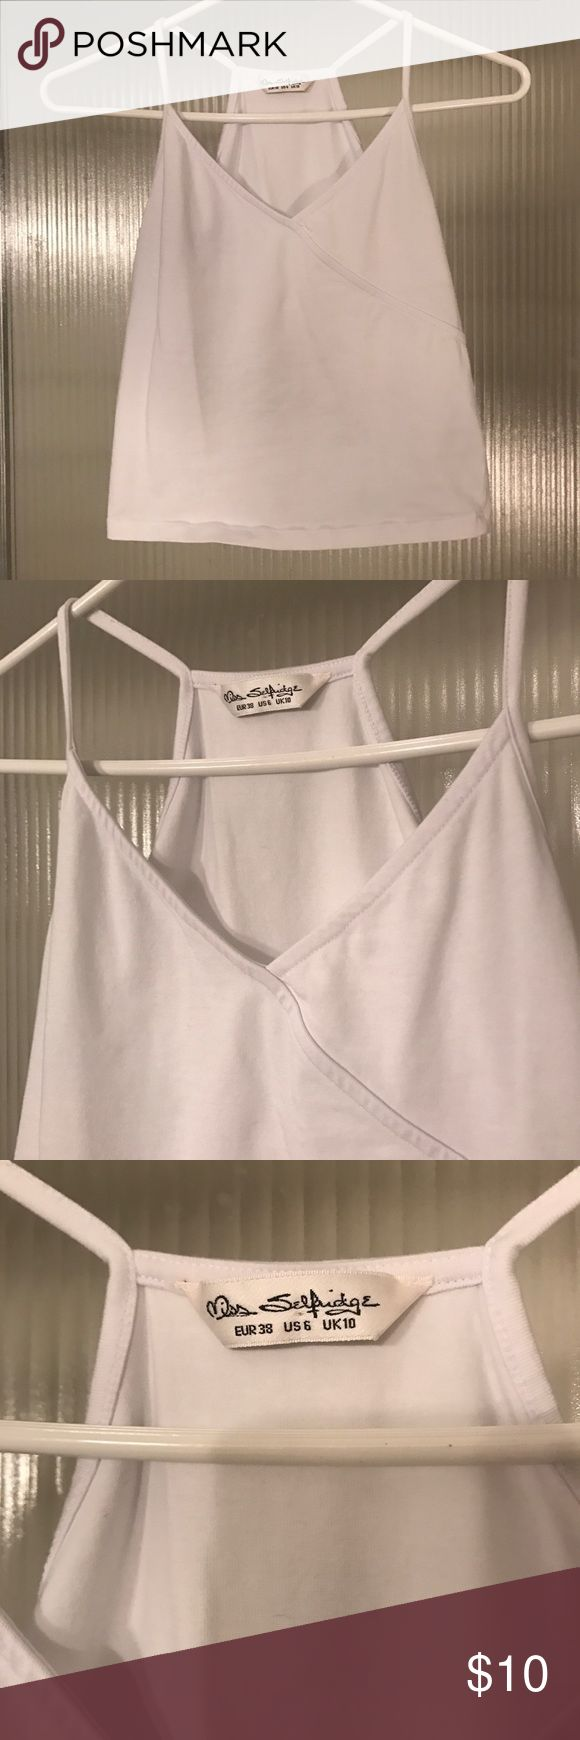 👛US Size 6 (S) White Crop Top Miss Selfridge👛 US Size 6 (Small, borderline Medium) crop top in white. Super versatile and comfortable. Phenomenal quality, shows no signs of wear. Miss Selfridge Tops Crop Tops